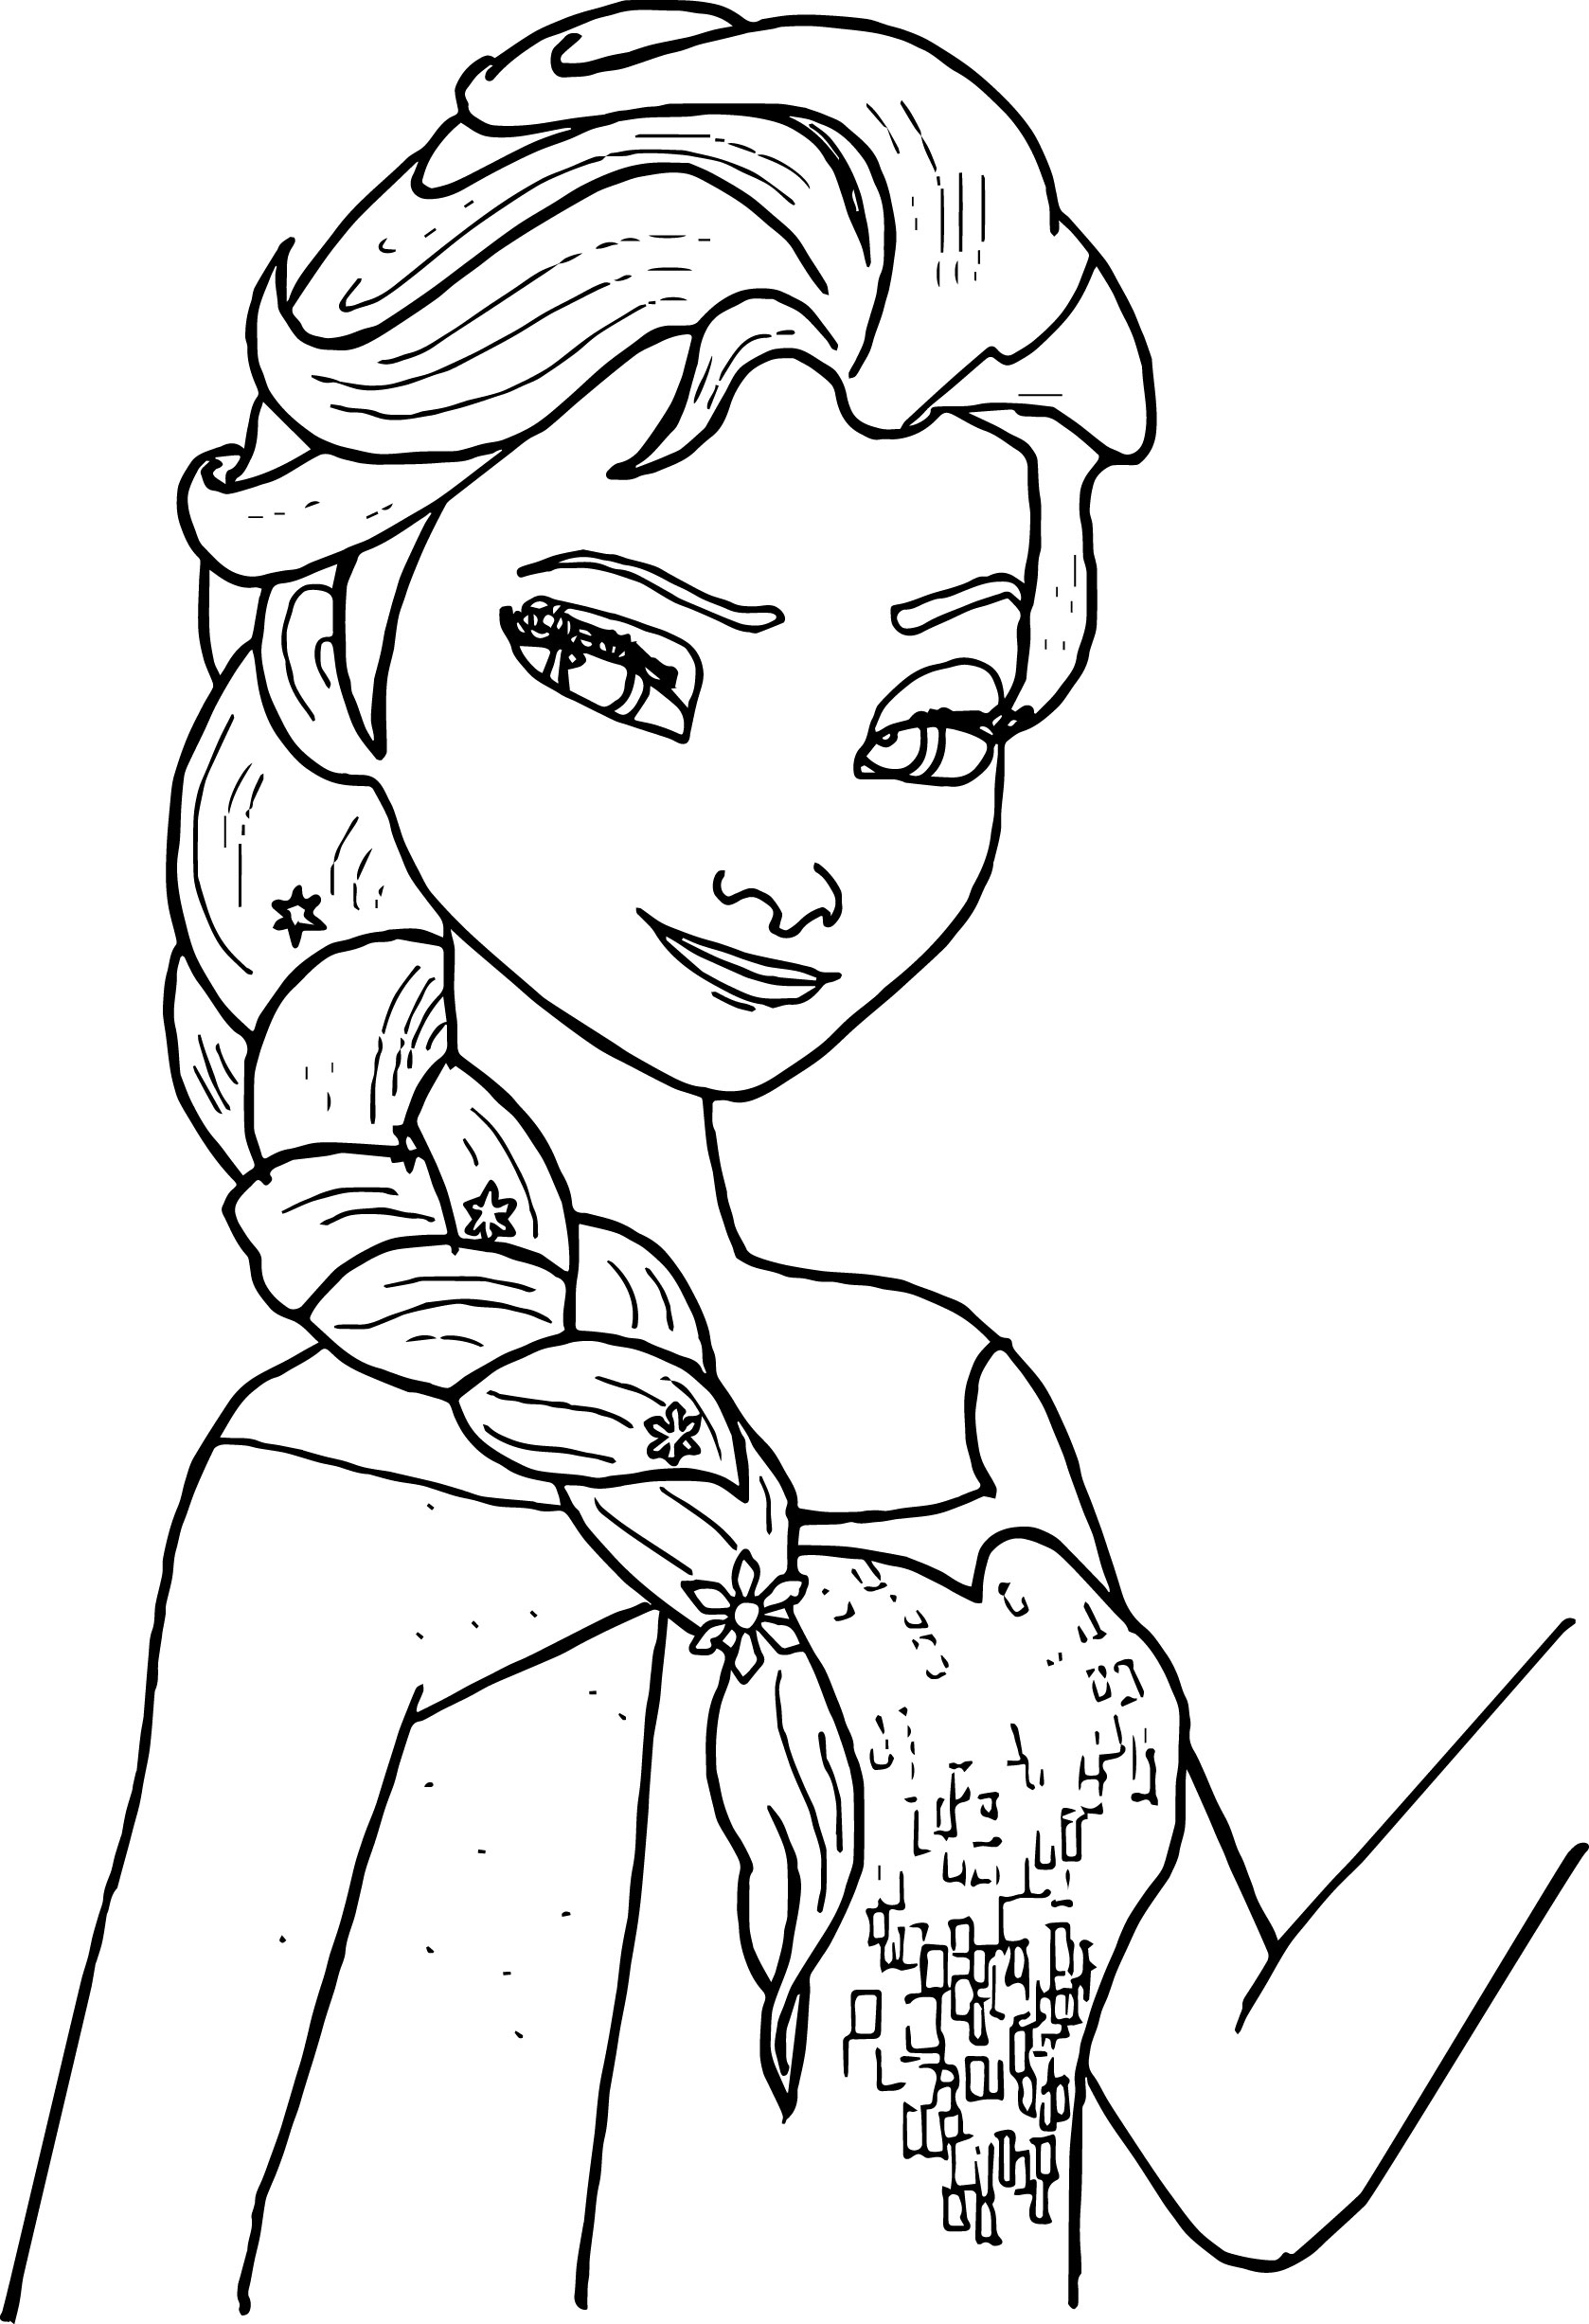 Elsa Frozen Coloring Pages Free Printable Elsa Coloring Pages For Kids  Best Coloring Pages